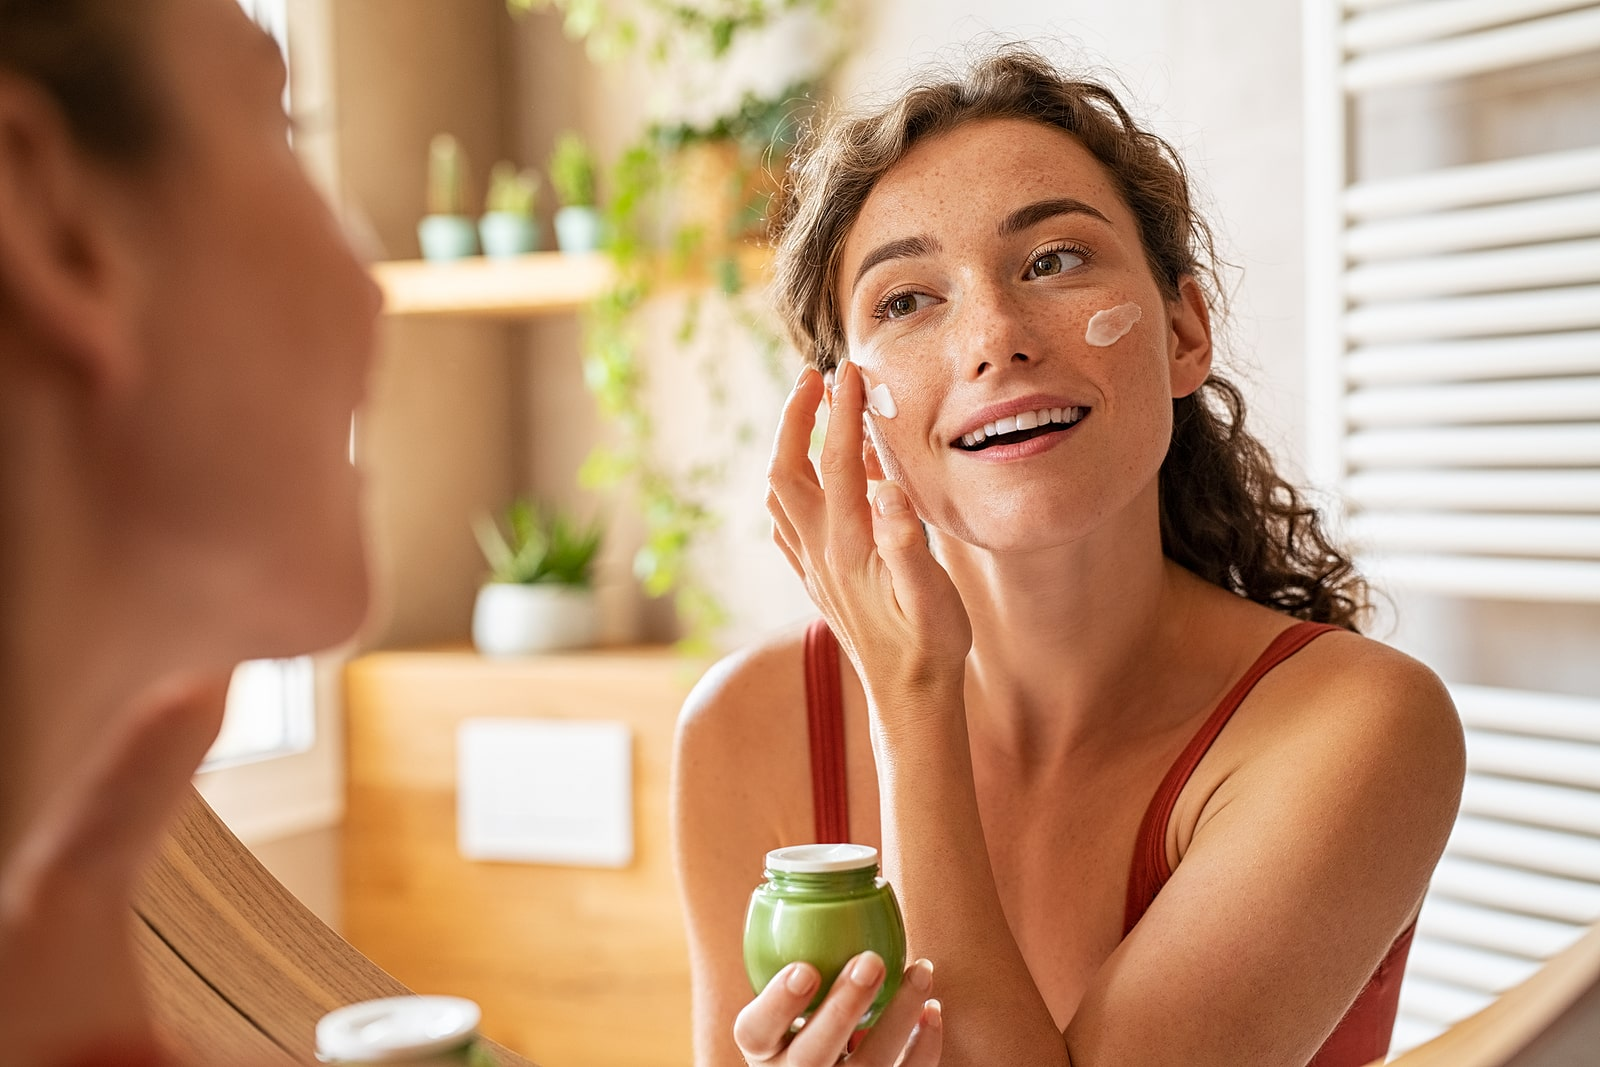 How toxins affect fertility- cosmetics. Woman putting on face lotion in mirror